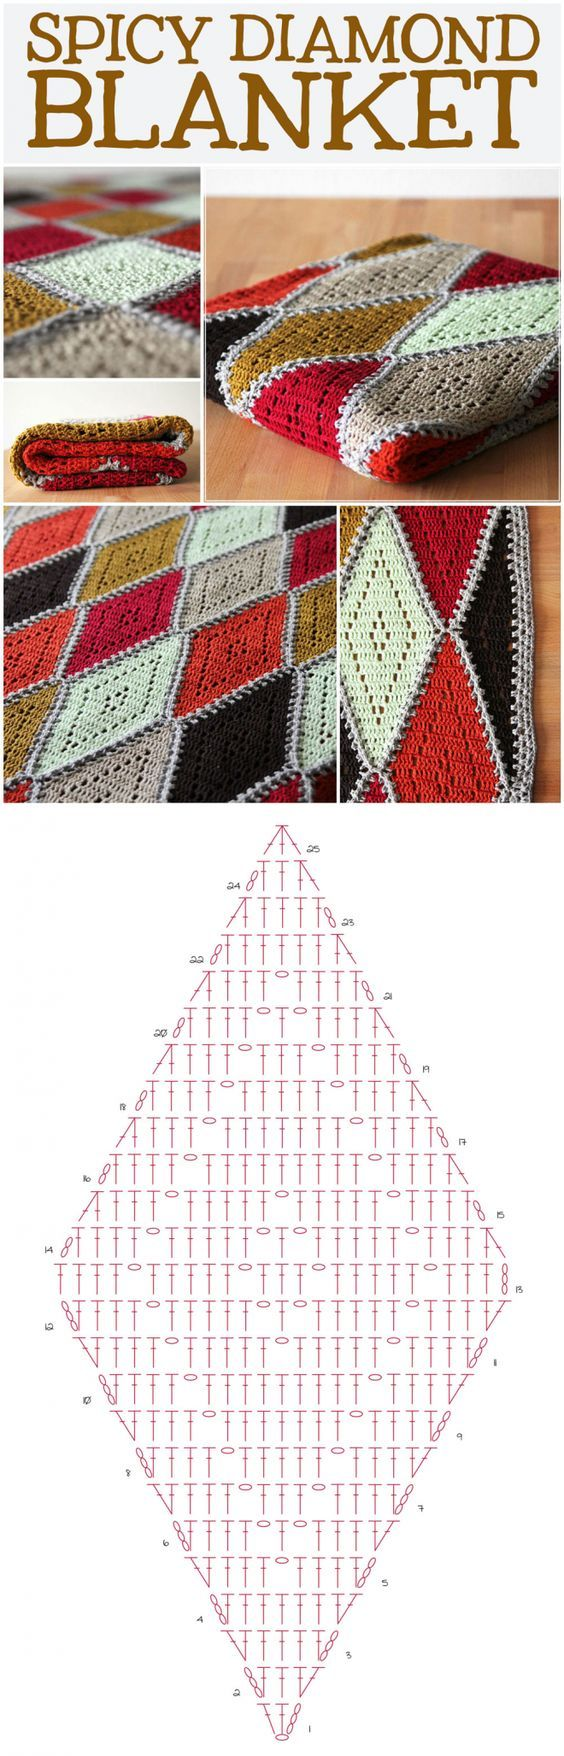 Free crochet pattern: spicy diamond blanket - haak maar Raak...♥ Deniz